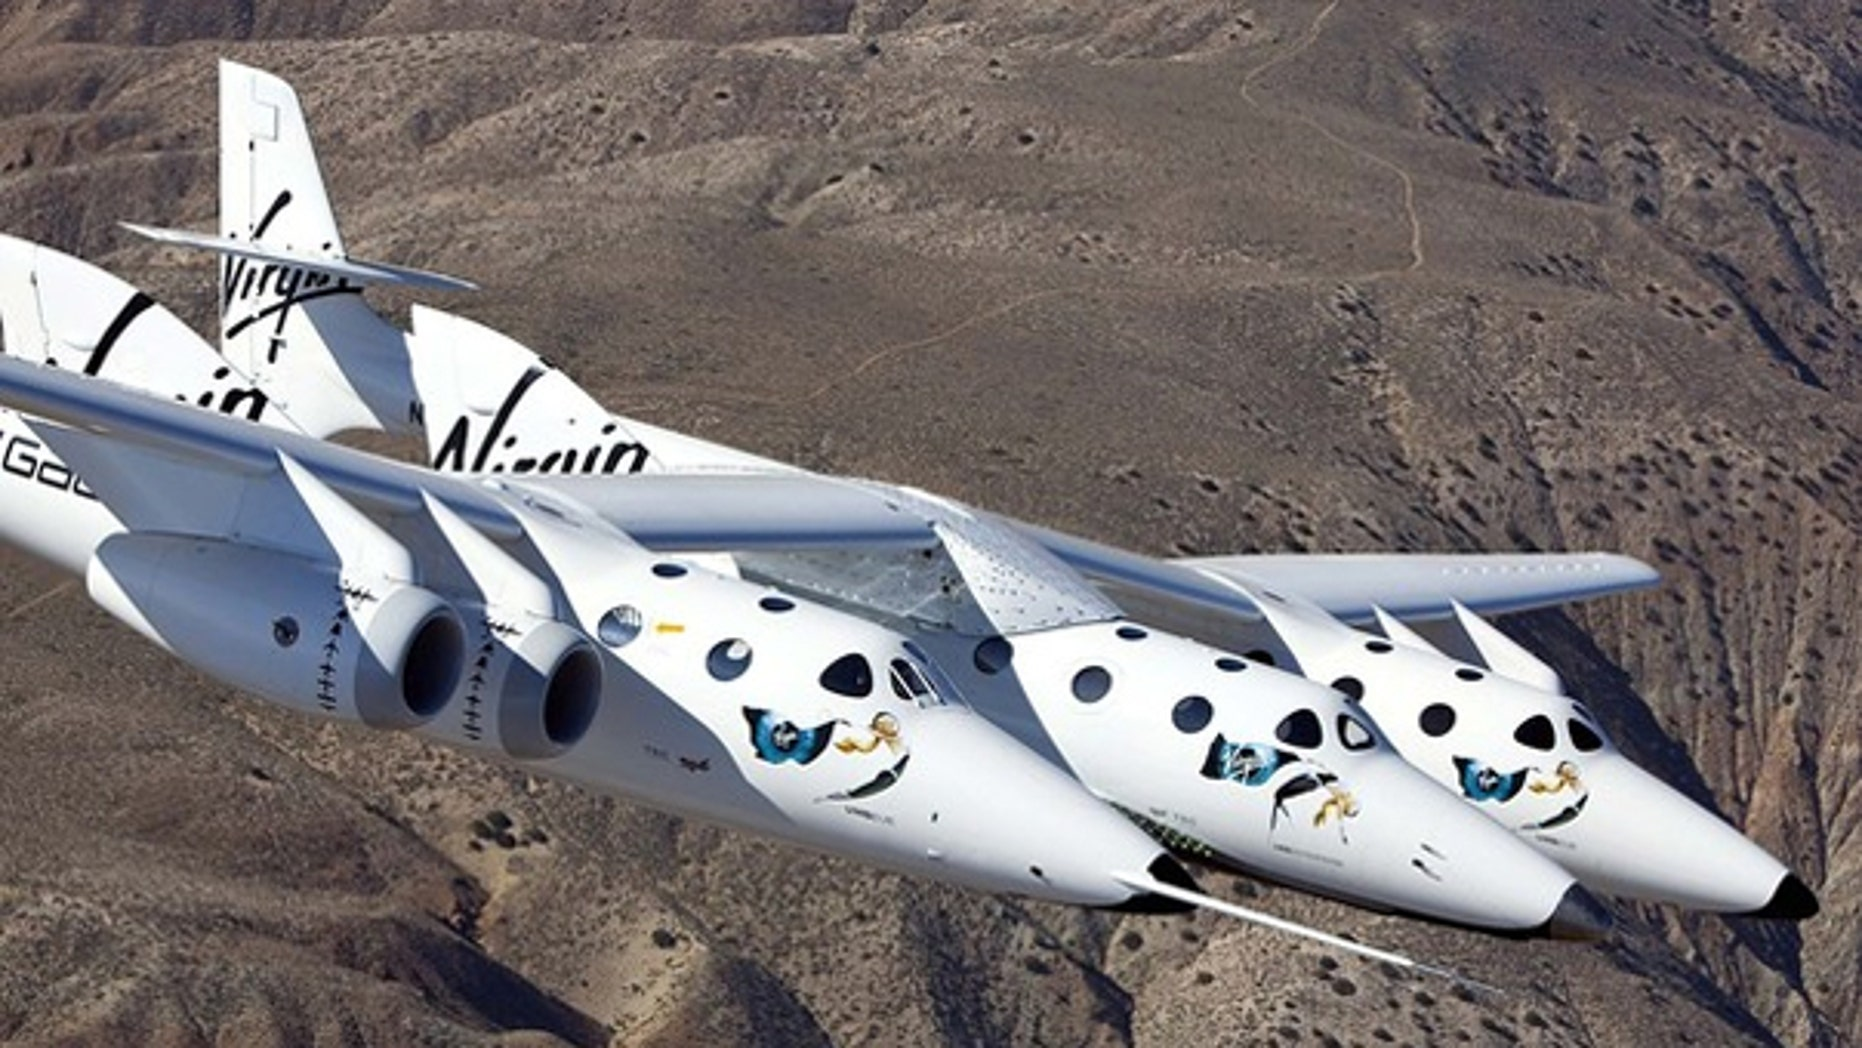 March 22: Virgin Galactic's SpaceShipTwo, which can hold six passengers, is seen on its maiden flight over the Mojave Desert.